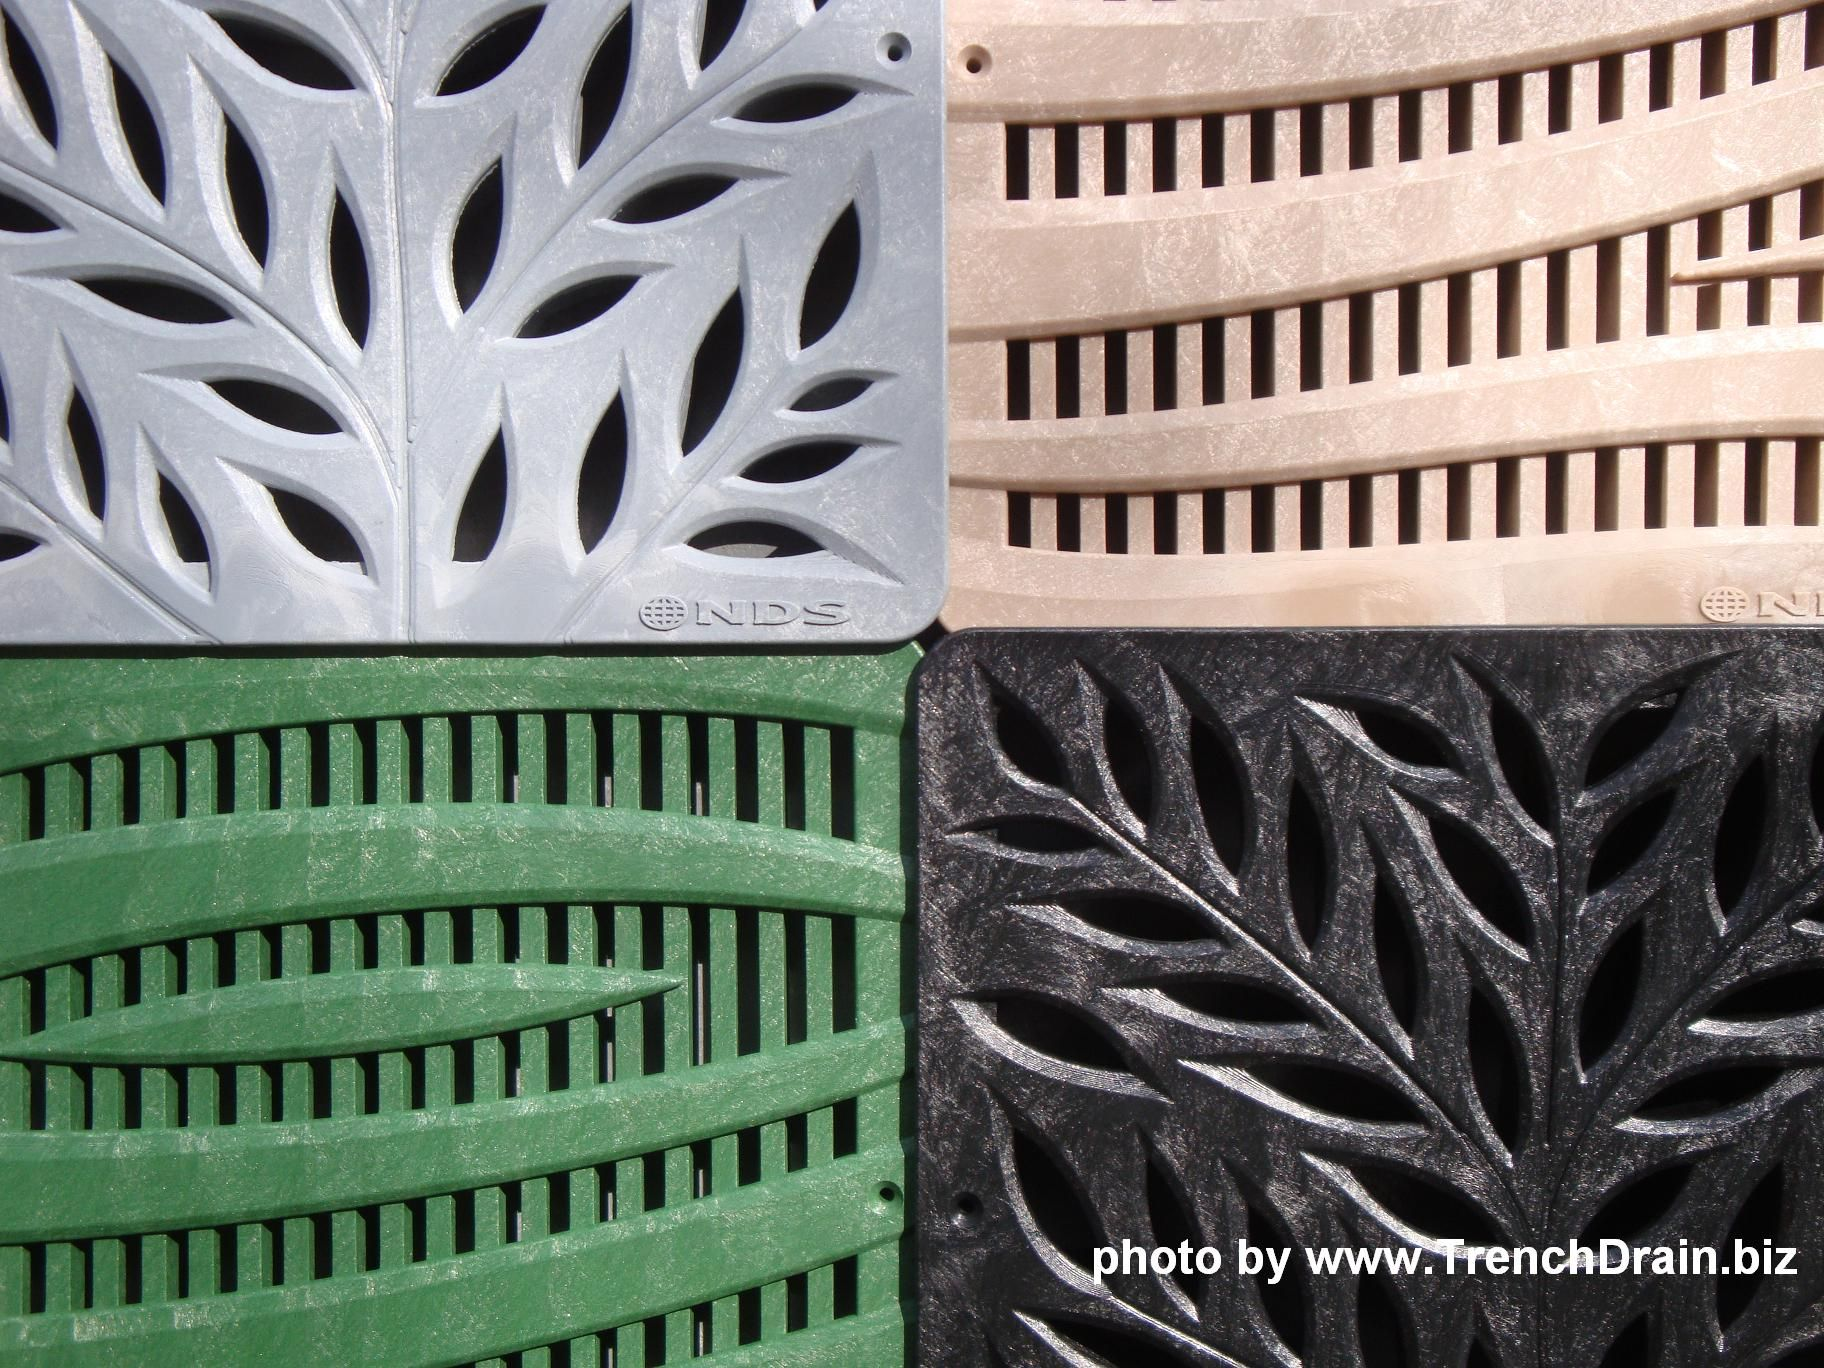 Decorative Yard Drainage : Nds trench drain decorative plastic grates